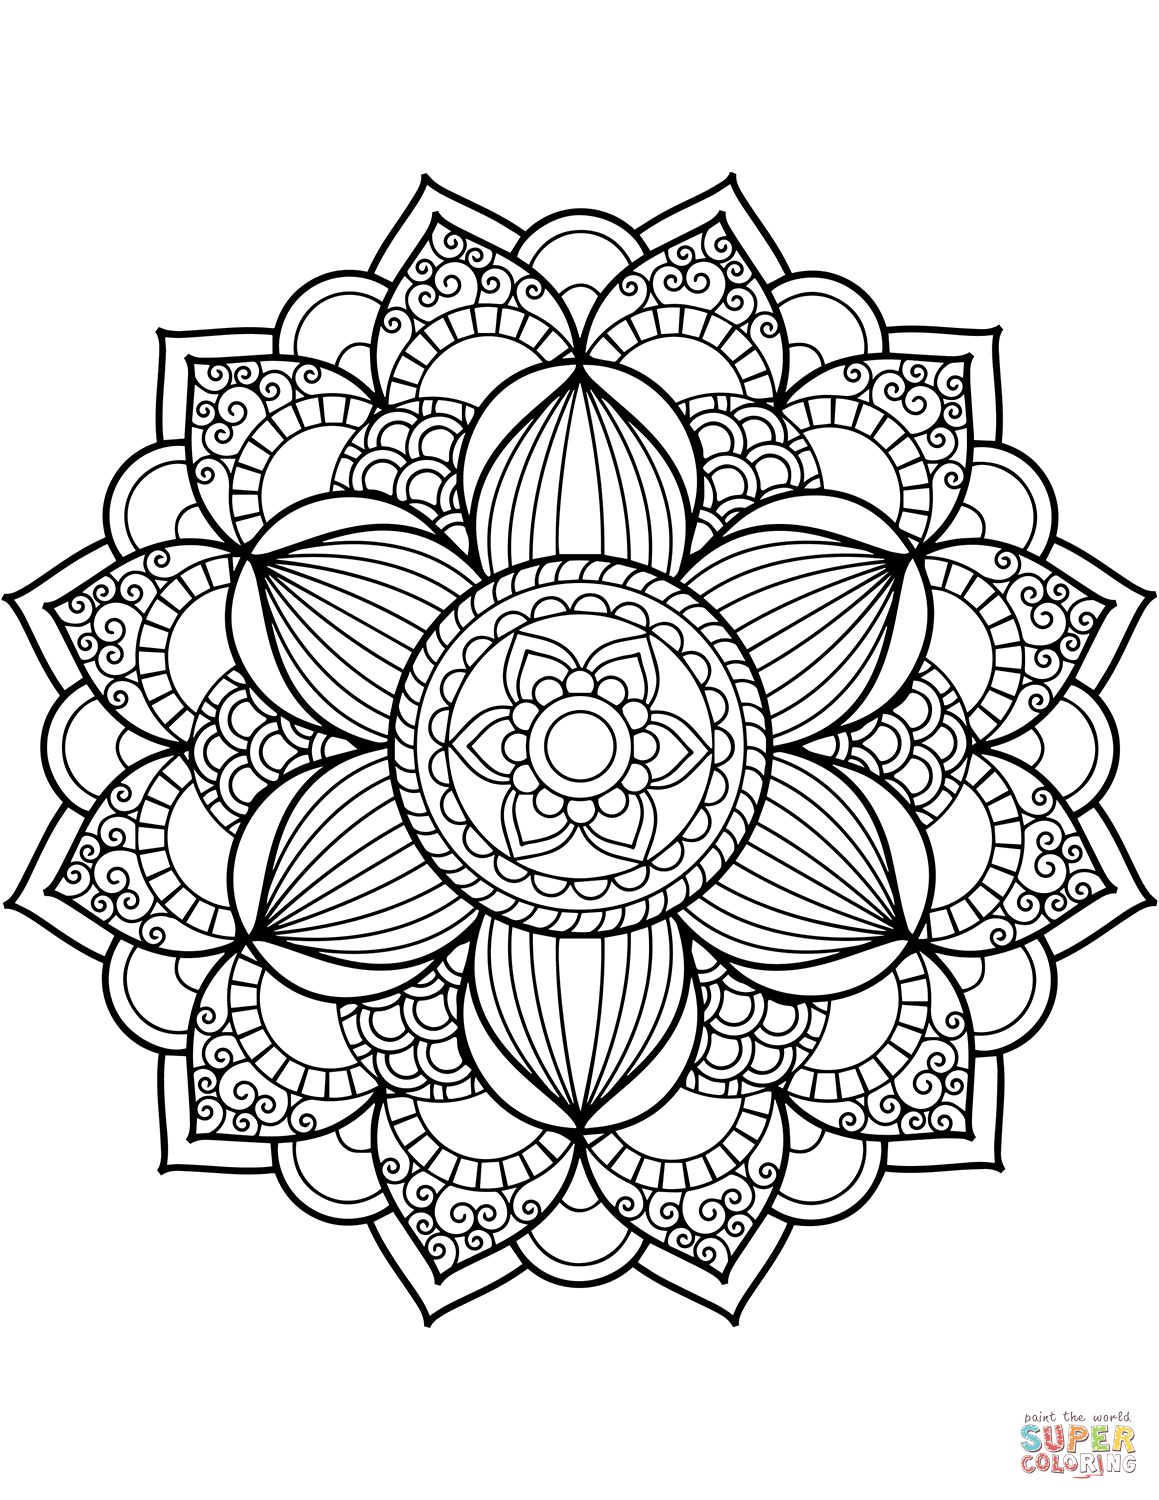 Image Result For Mandala Coloring Pages